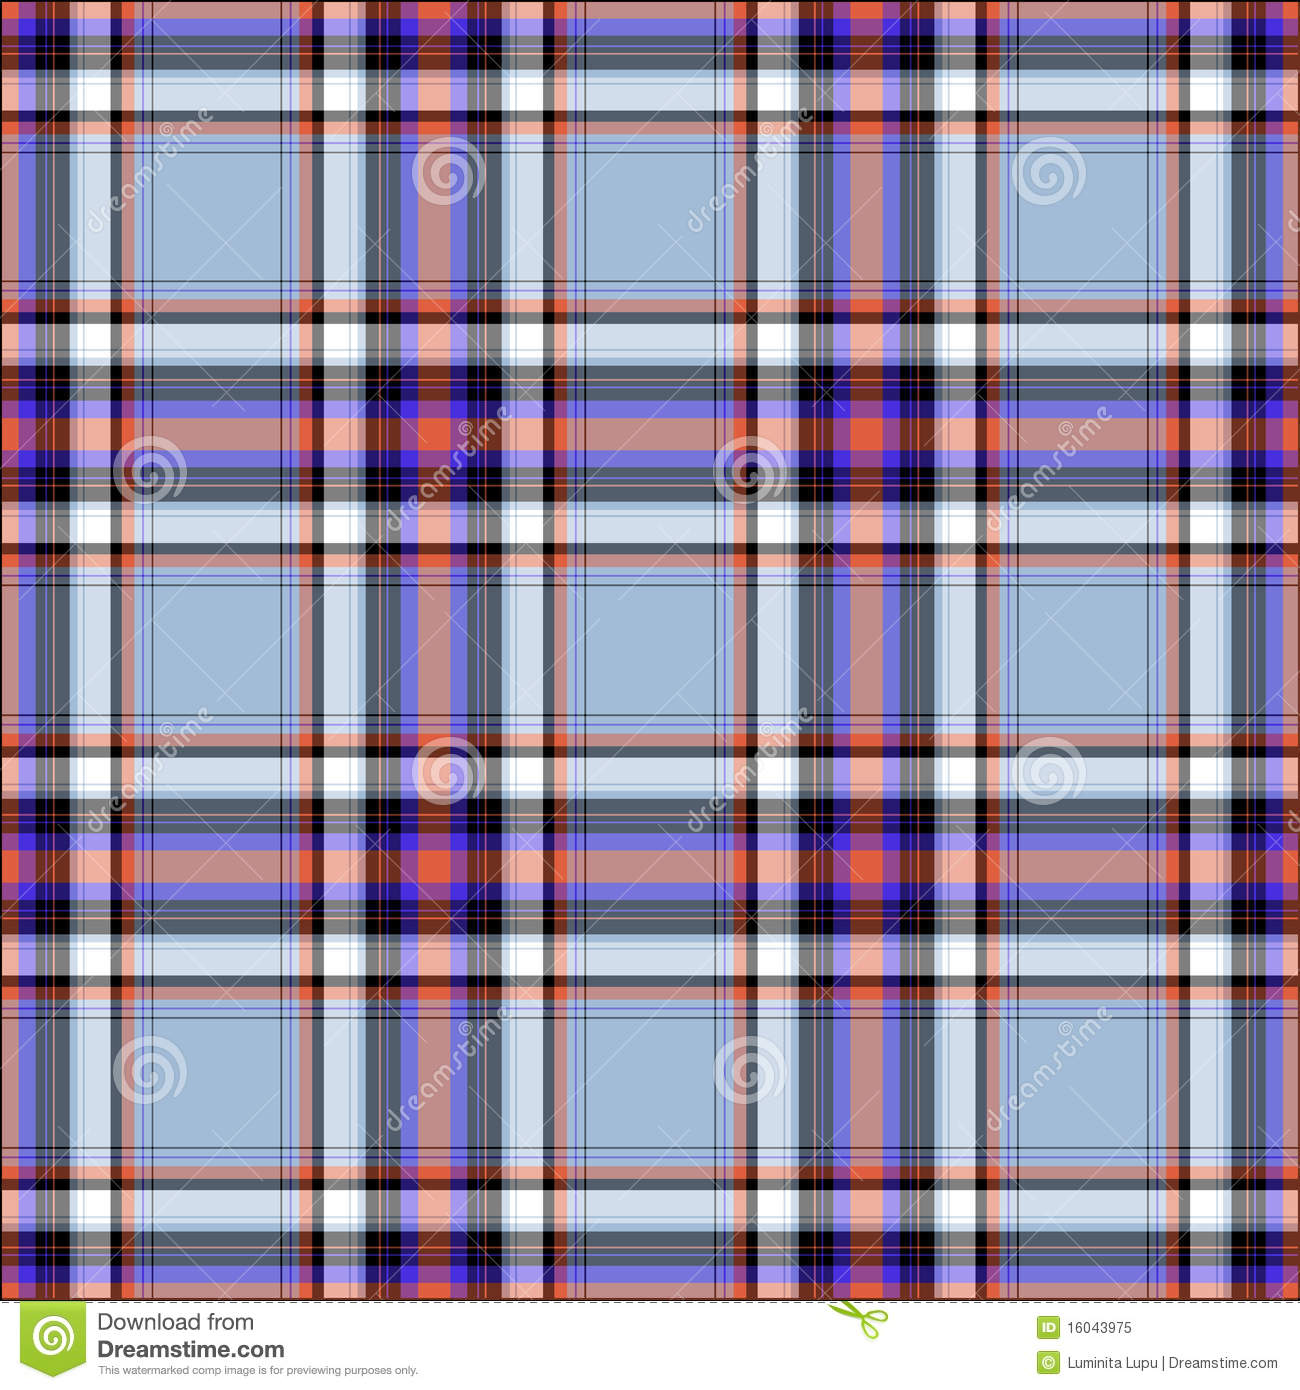 Colored texture, fabric texture with squares.: www.dreamstime.com/royalty-free-stock-photo-fabric-texture-squares...